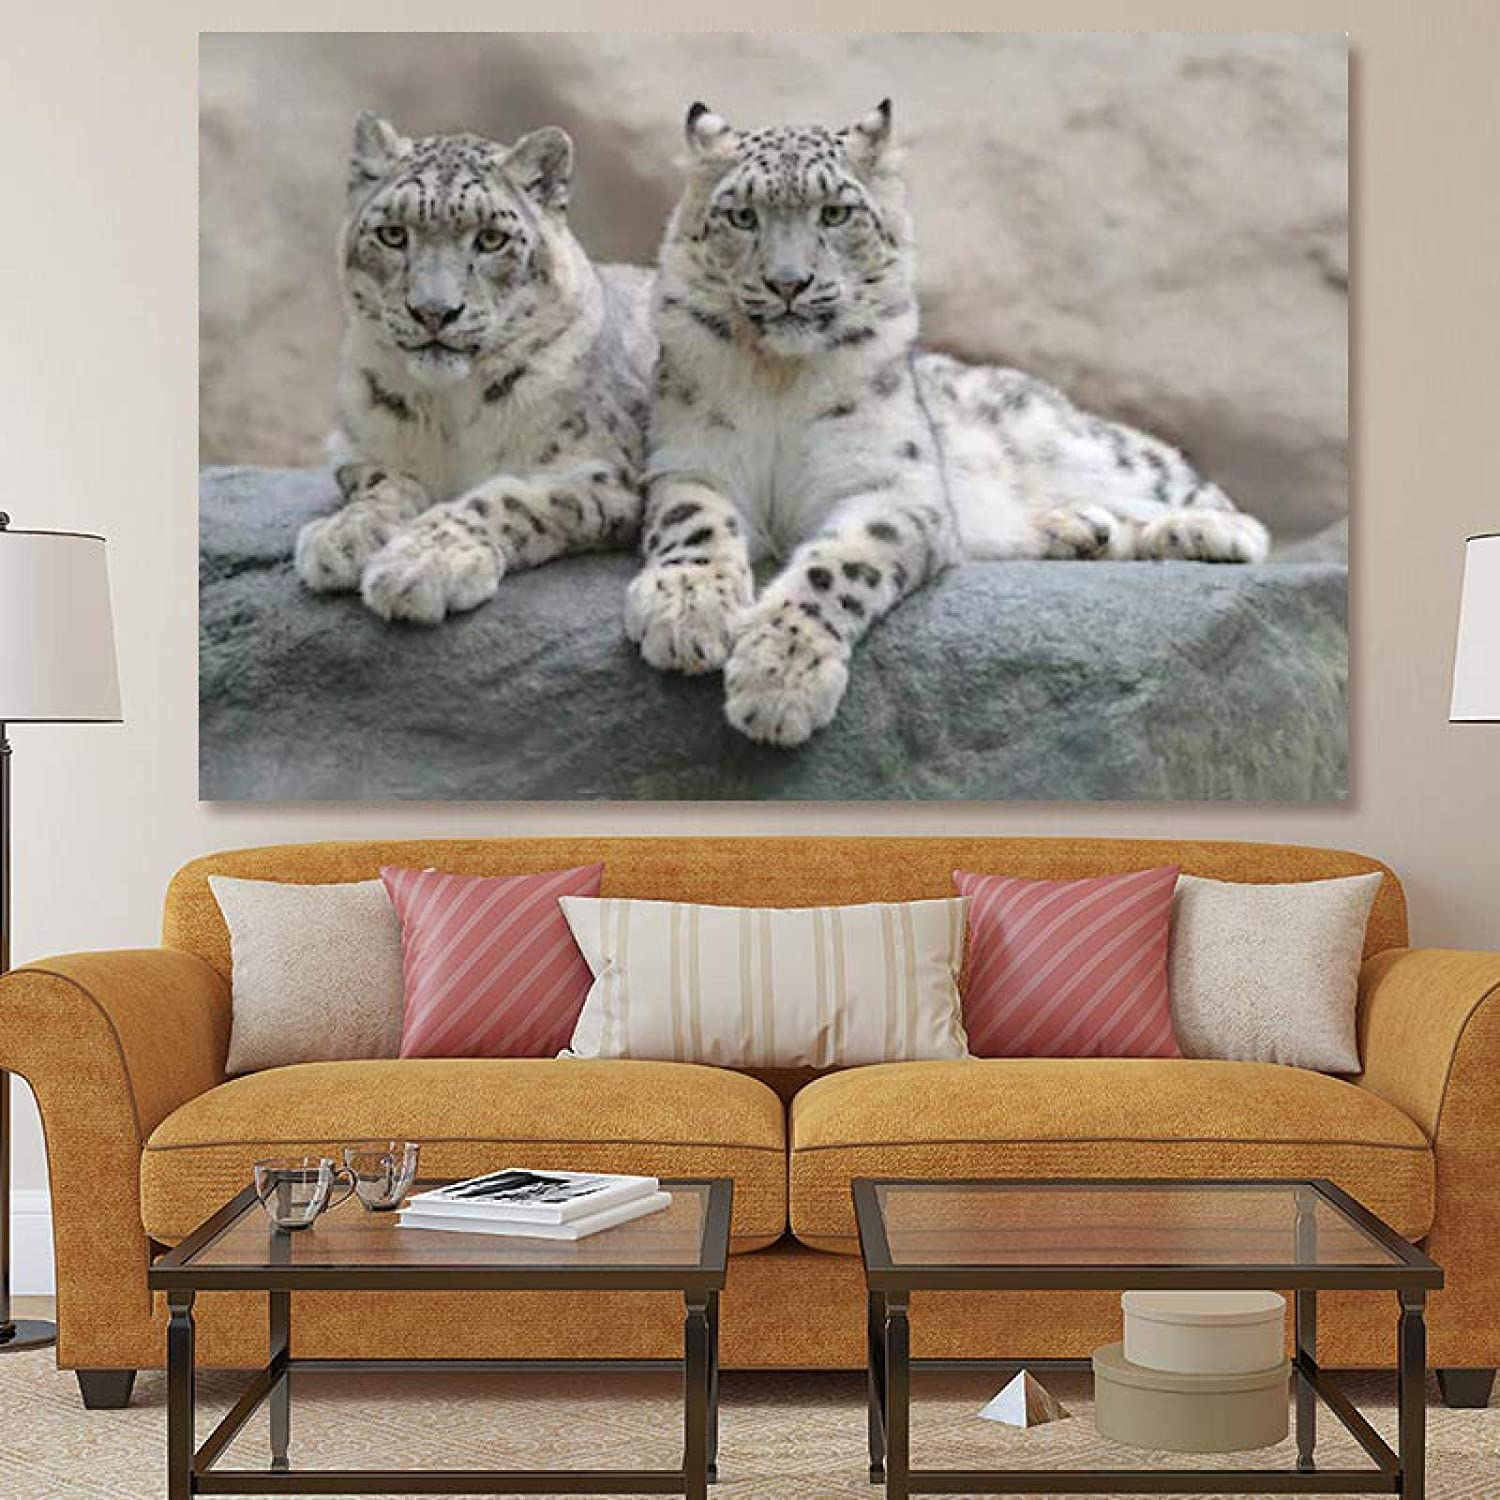 Sunsightly Canvas Wall Art Paintings Lying Dedication Max 85% OFF Th Leopards On